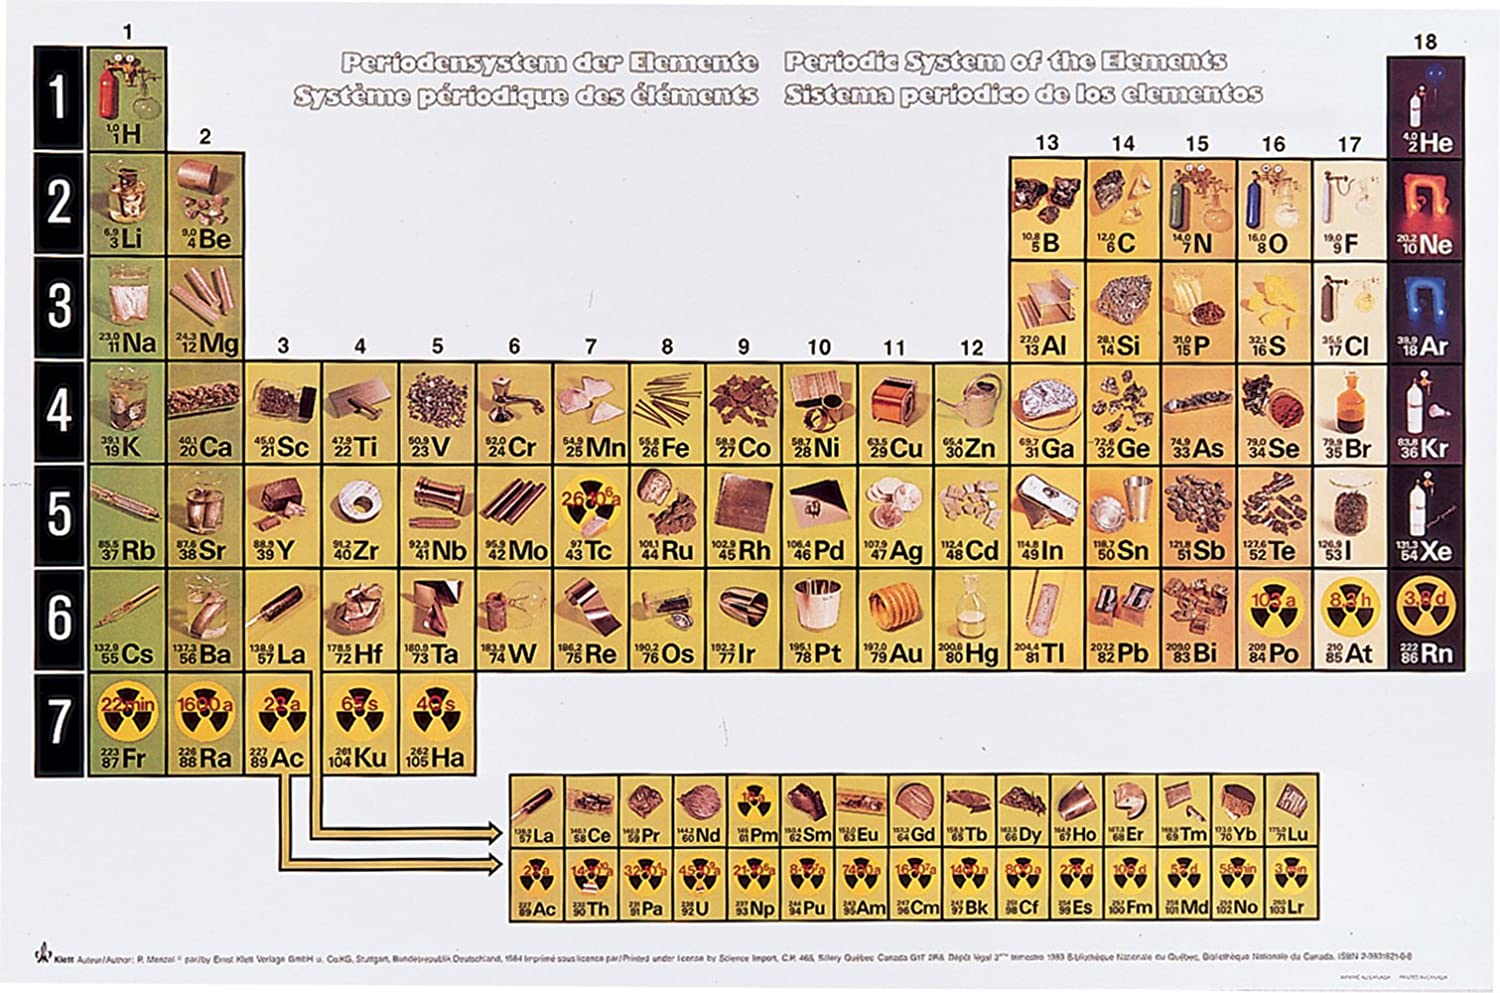 Chemical elements illustrated periodic table chart amazon chemical elements illustrated periodic table chart amazon industrial scientific gamestrikefo Images